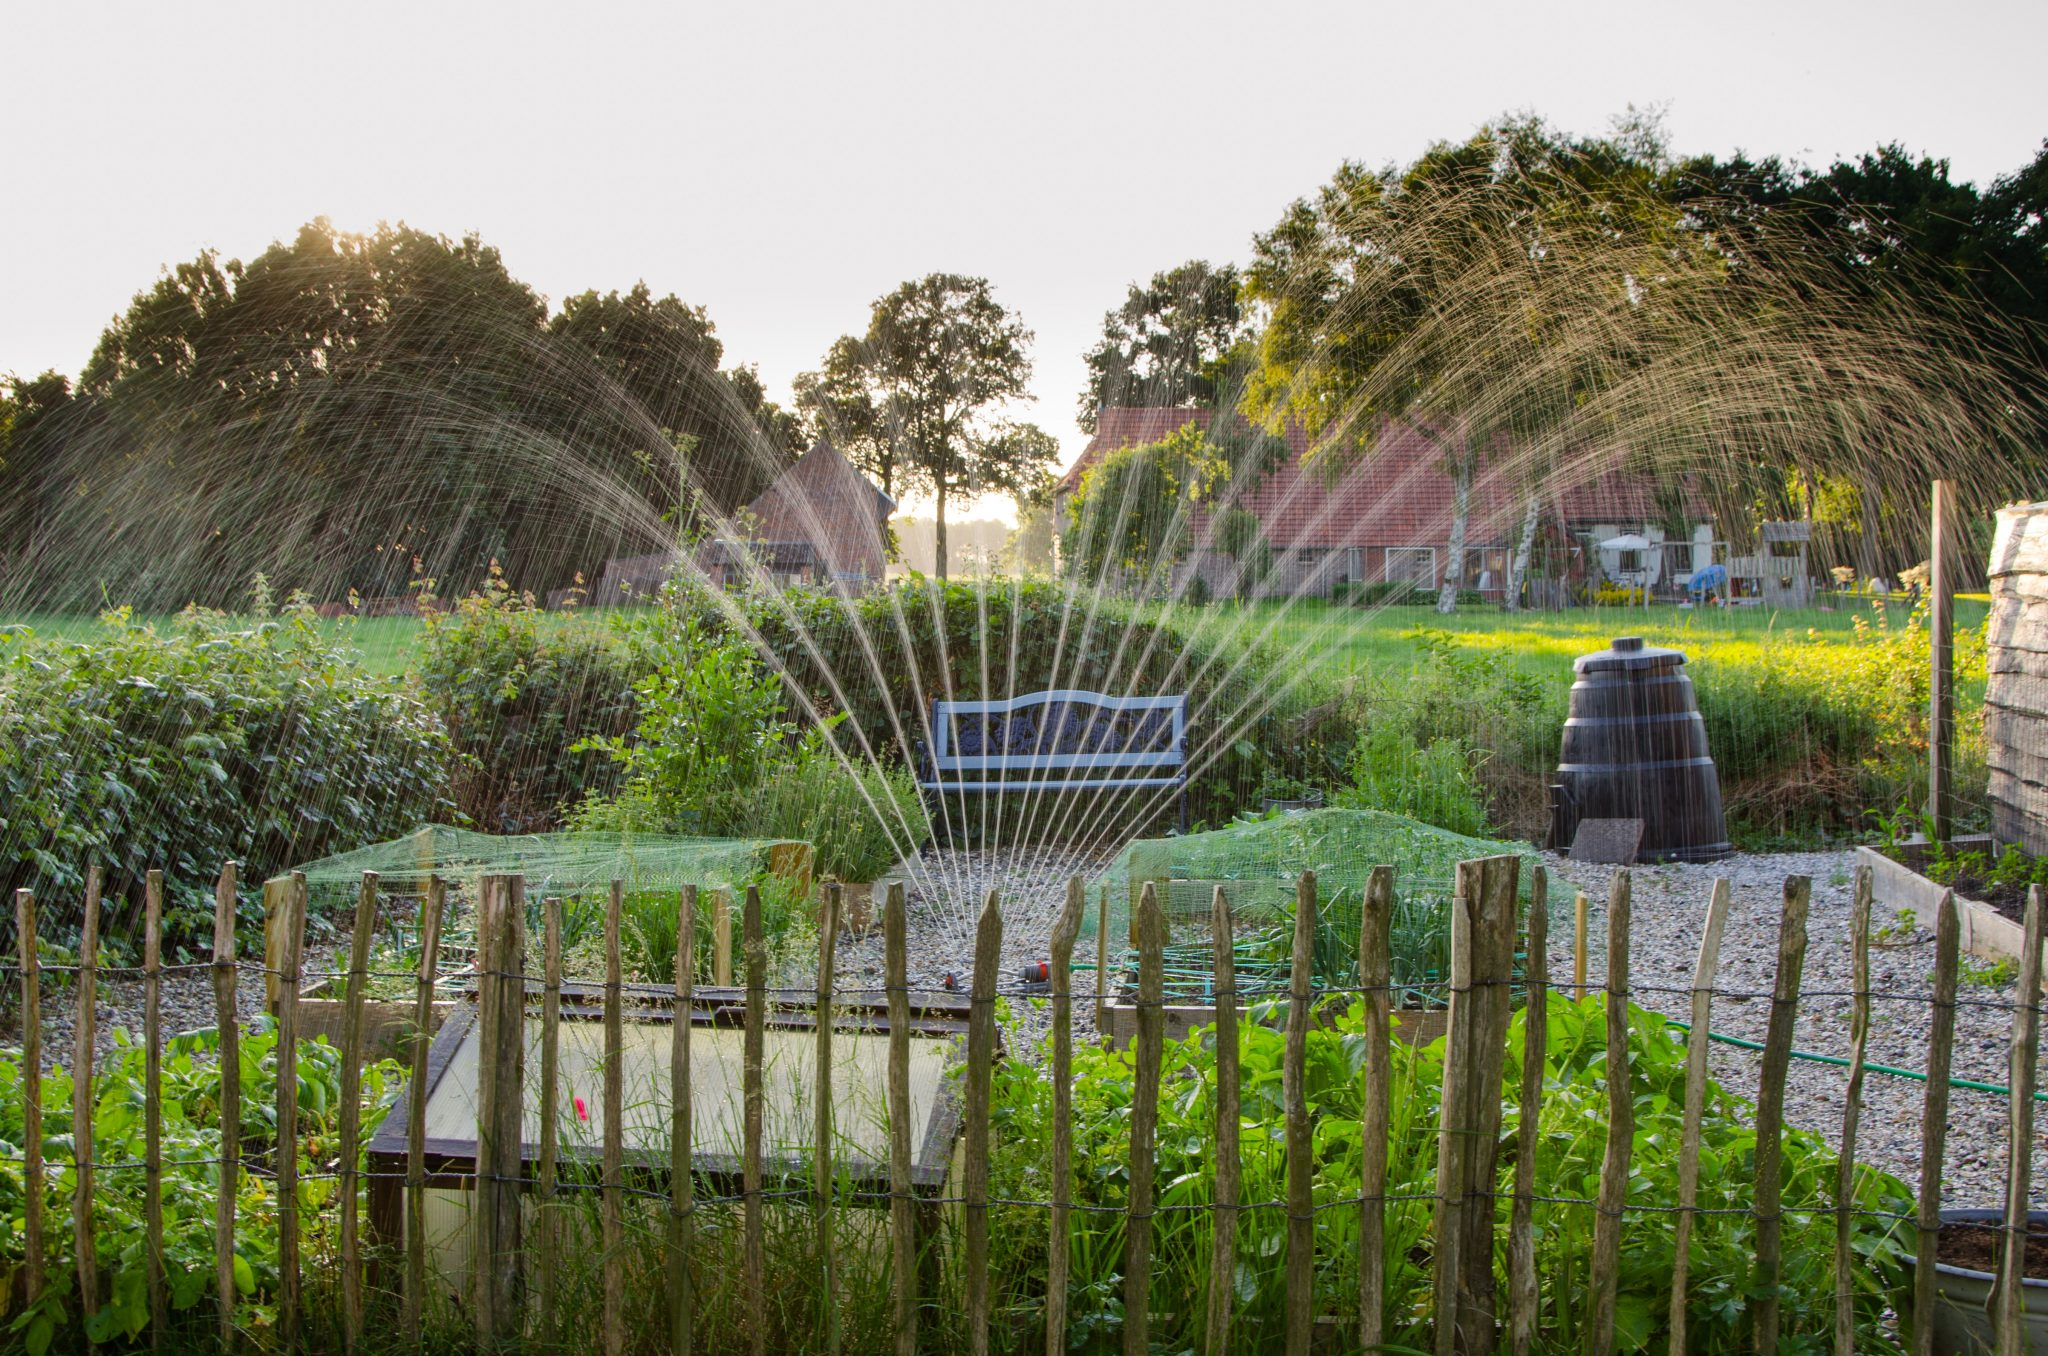 Check out these conversation tips to save water when watering your lawn!